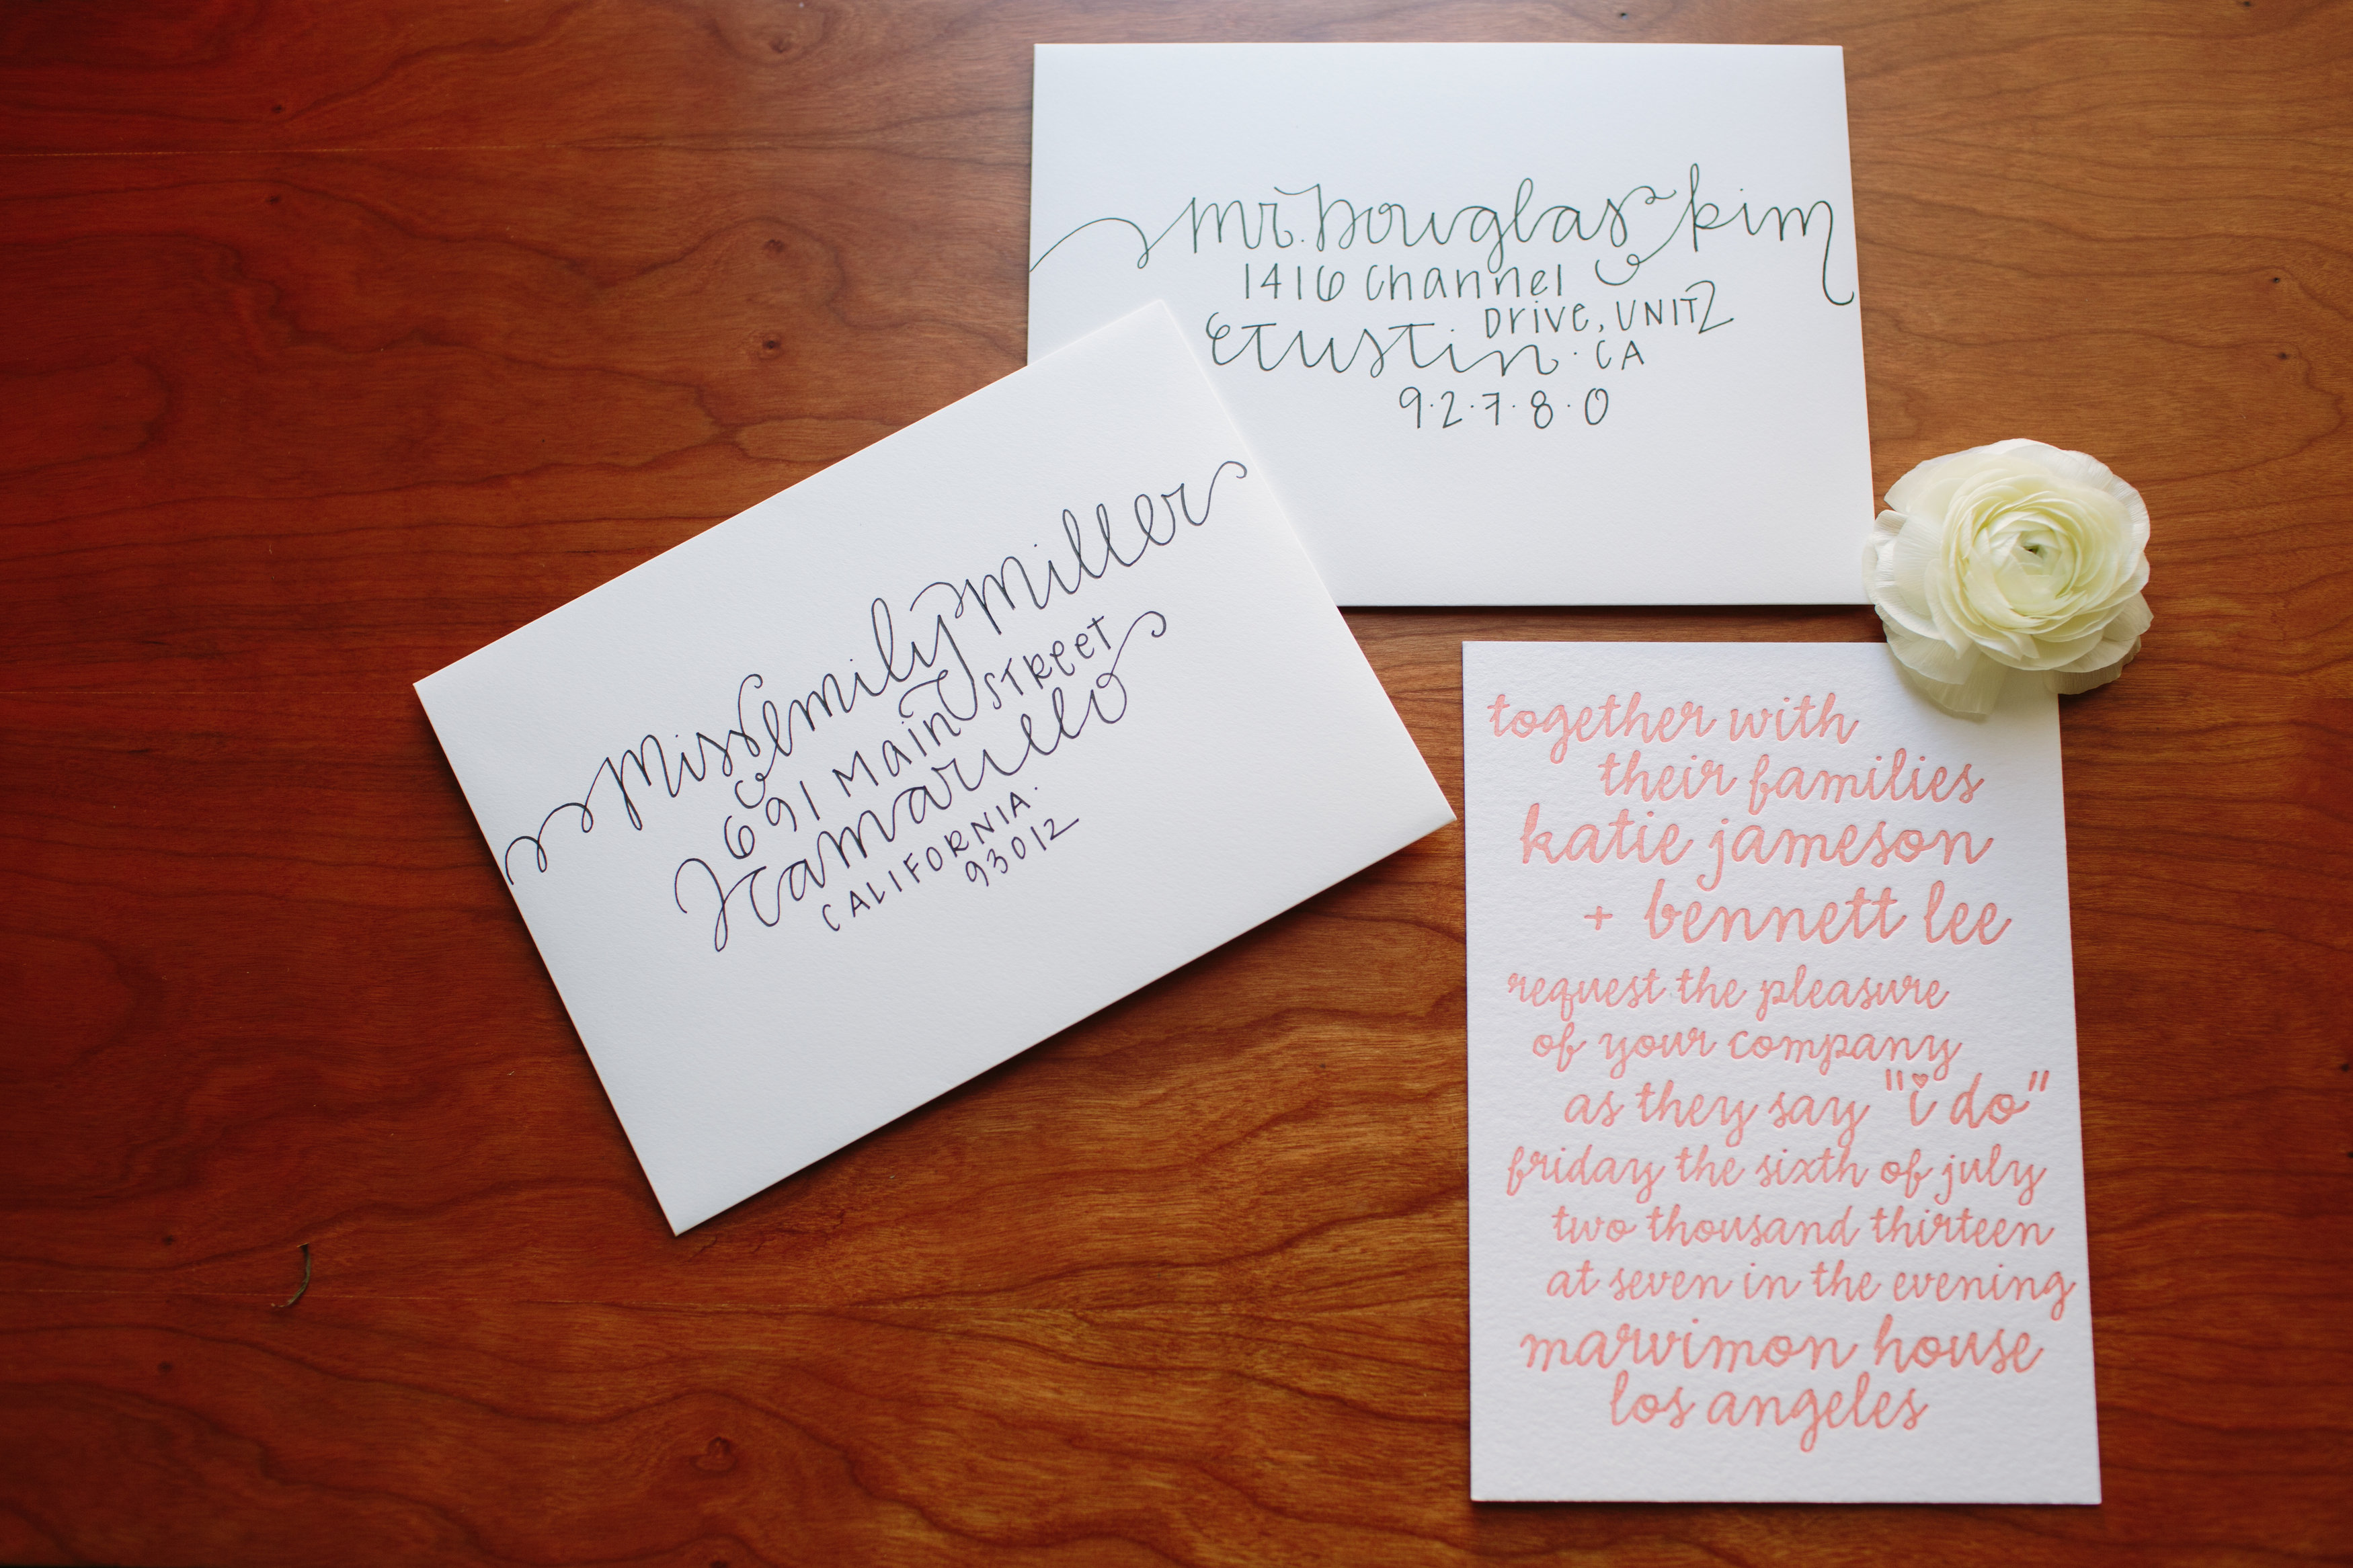 Diy wedding envelope addressing tips julep as thecheapjerseys Images